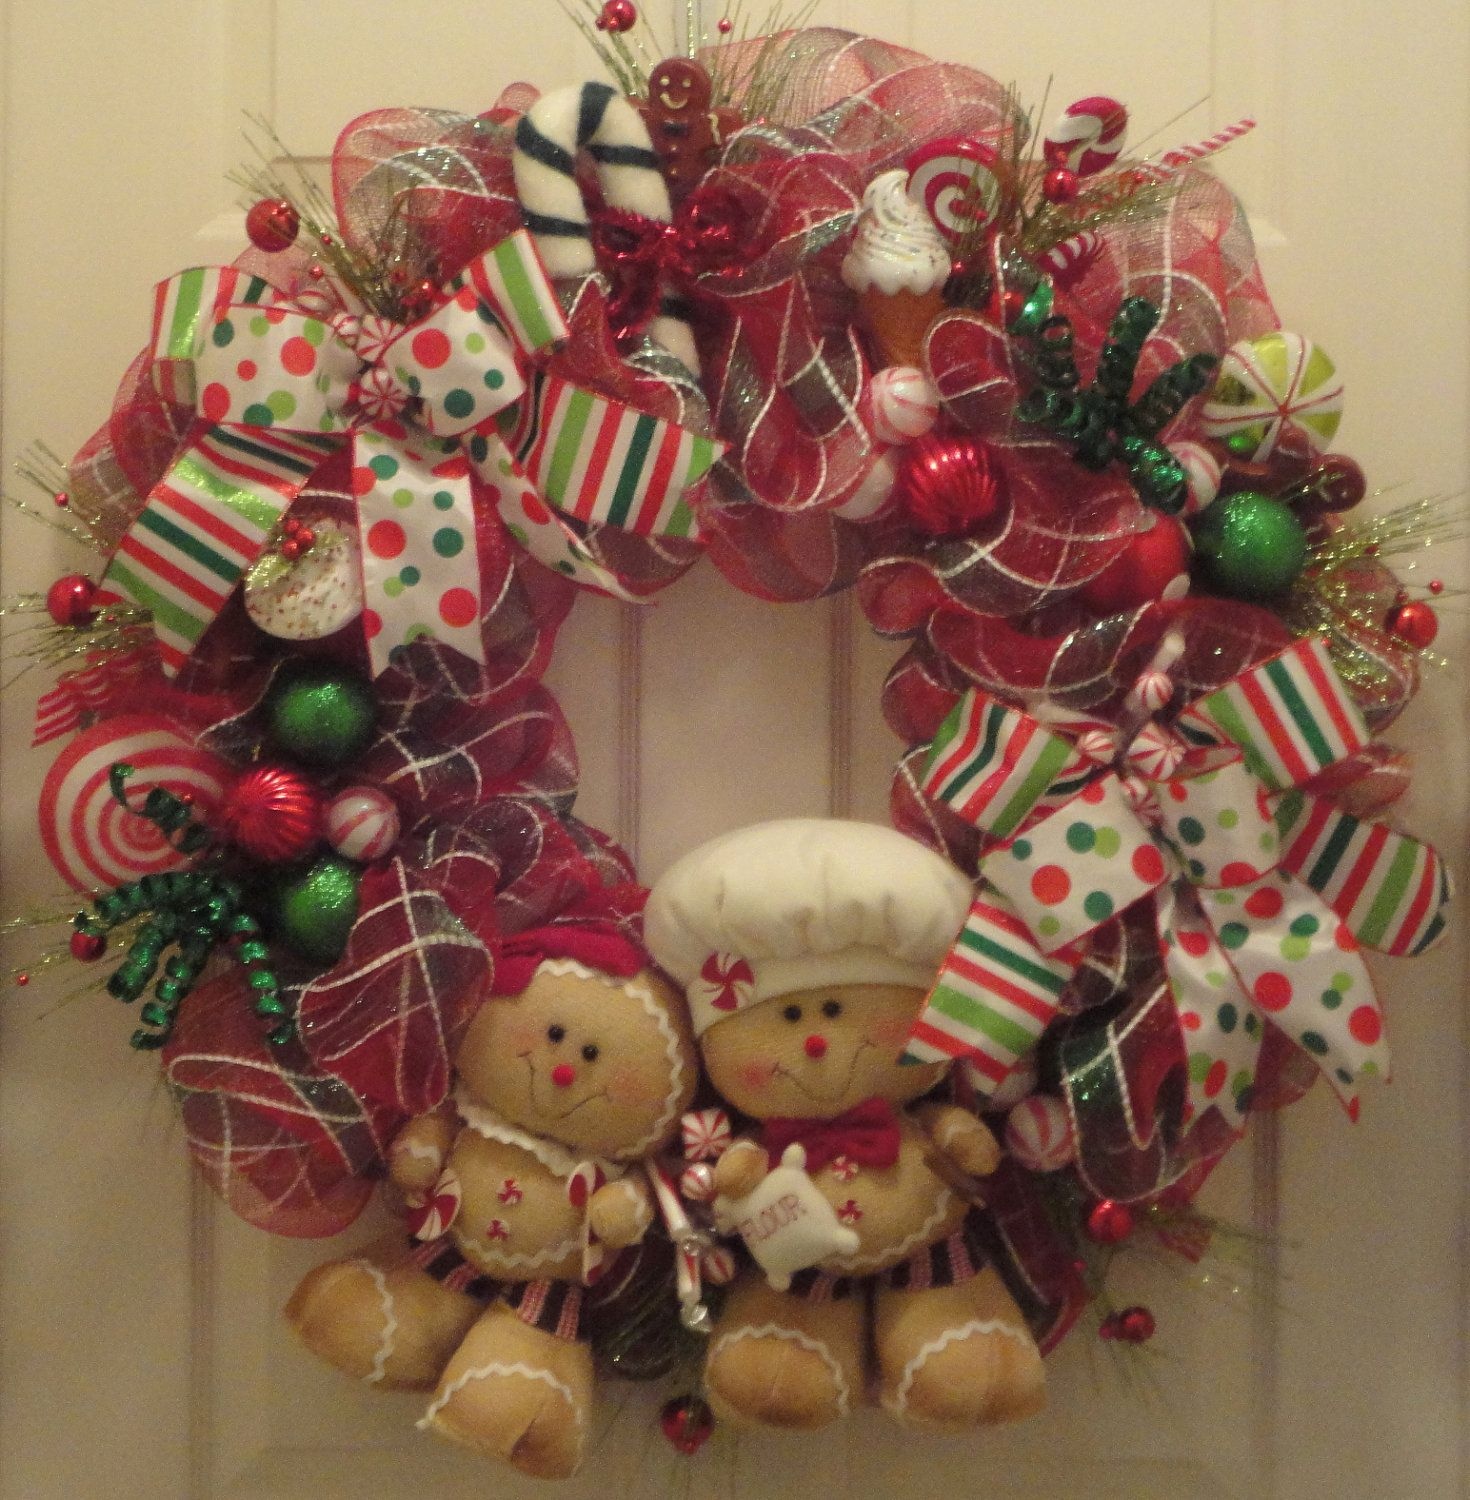 Sugar And Spice Gingerbread Wreath By Ramonareindeer On Etsy